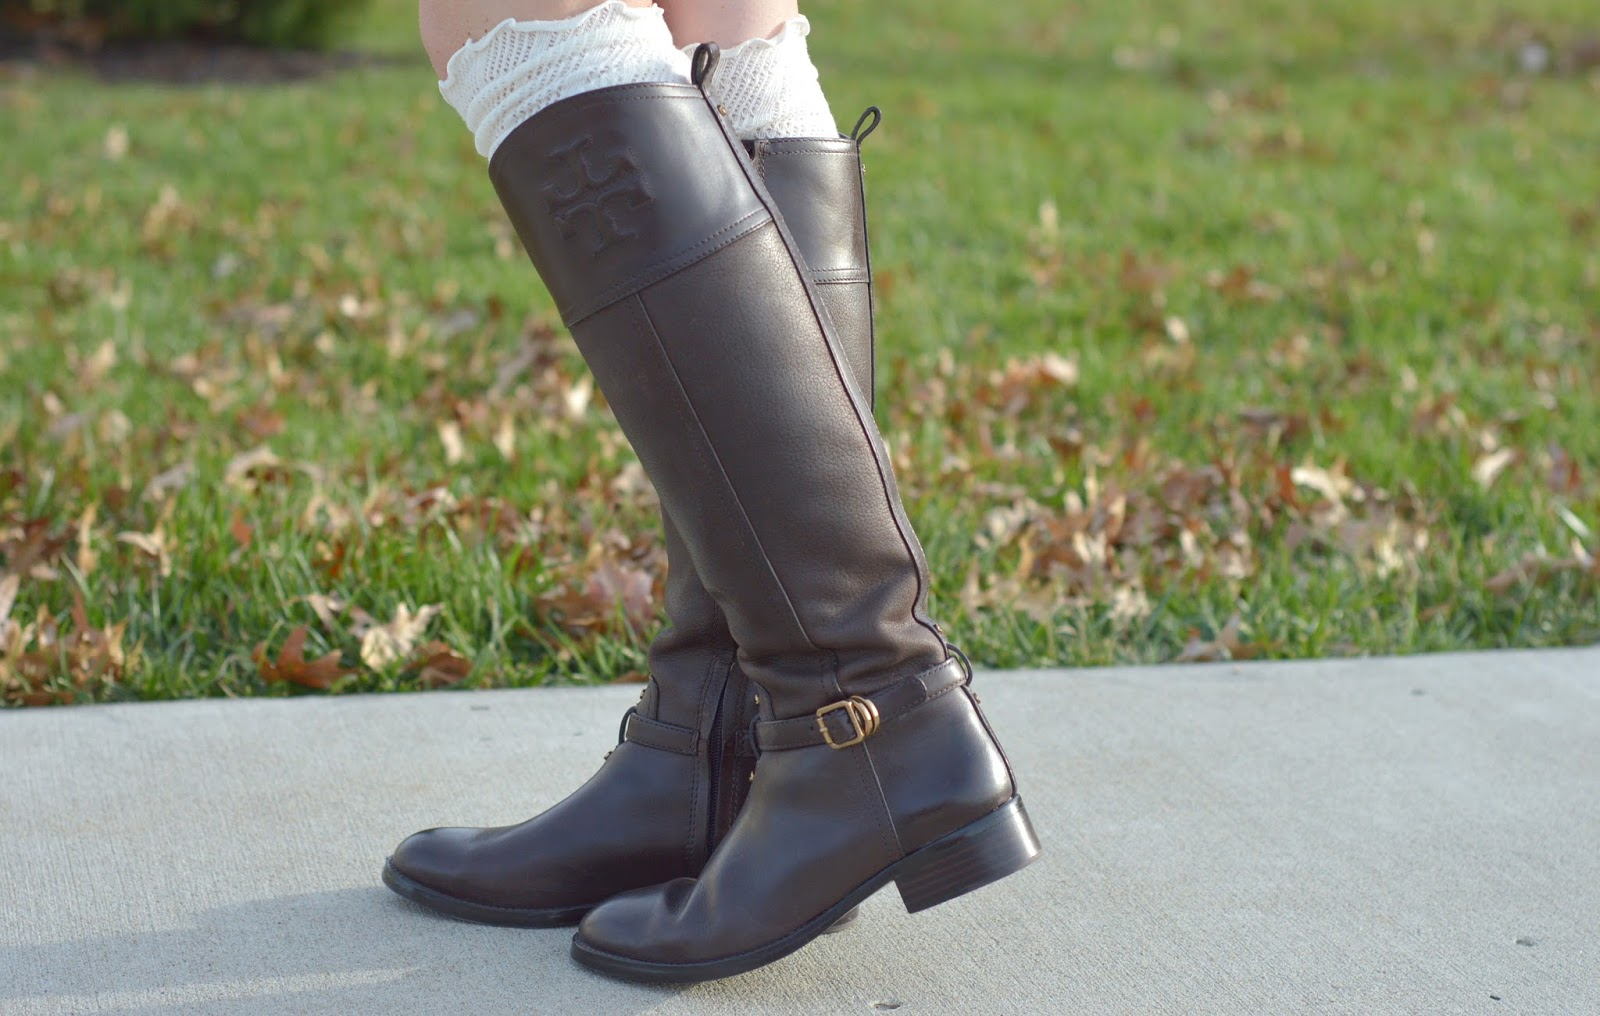 tory burch boots with boot socks